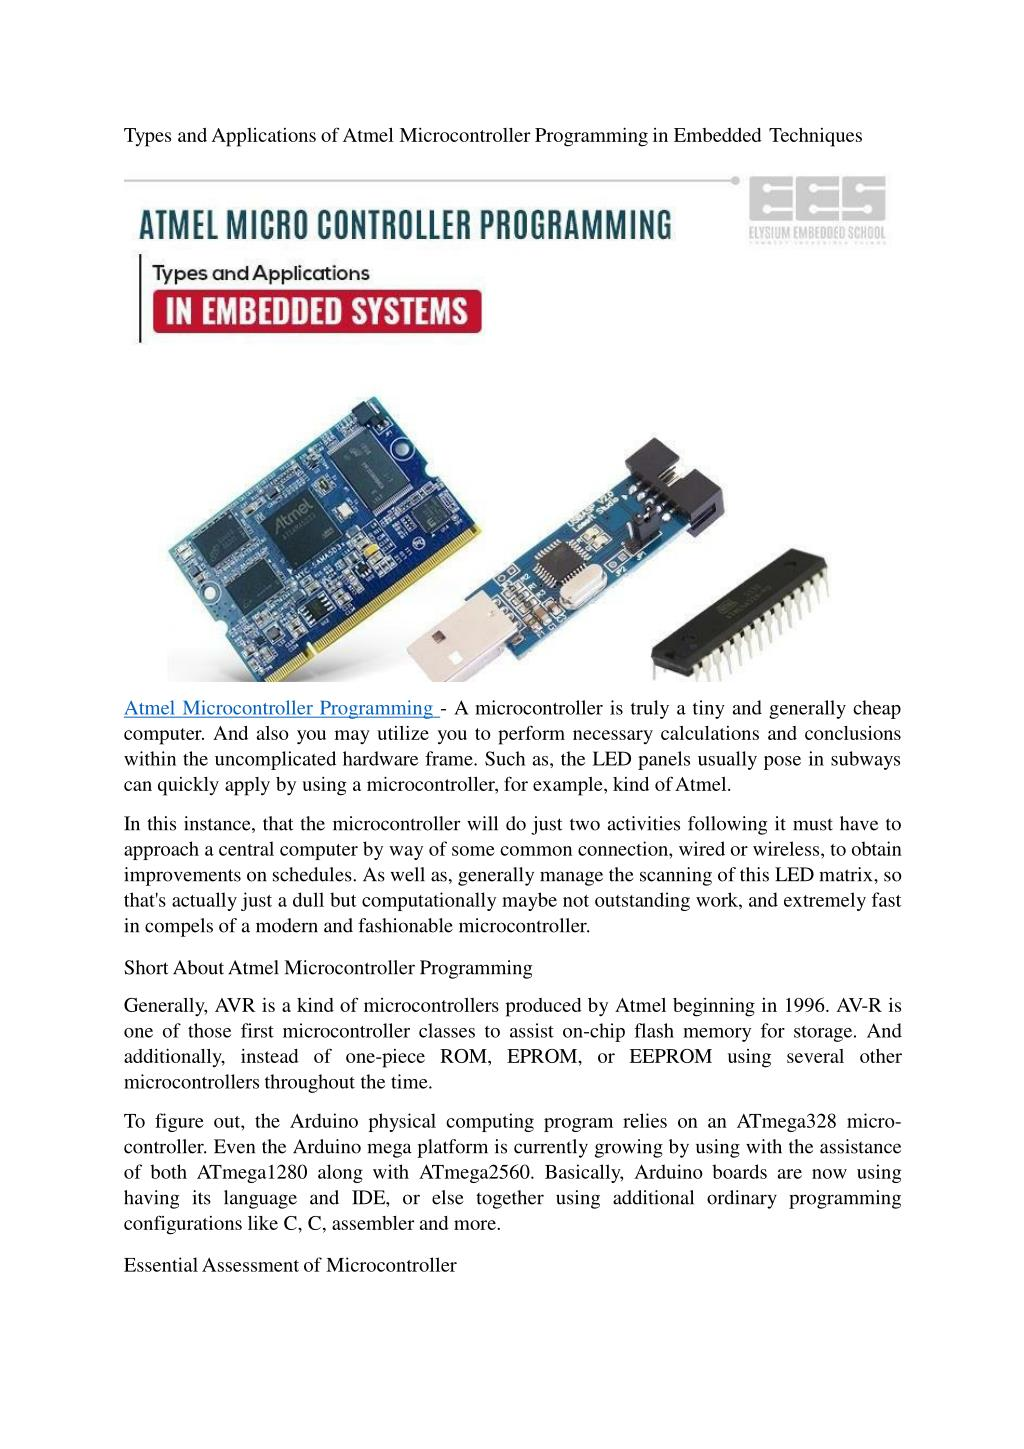 Ppt Atmel Microcontroller Programming Powerpoint Presentation Id 8051 Flash Based Programmer Electronic Types And Applications Of N